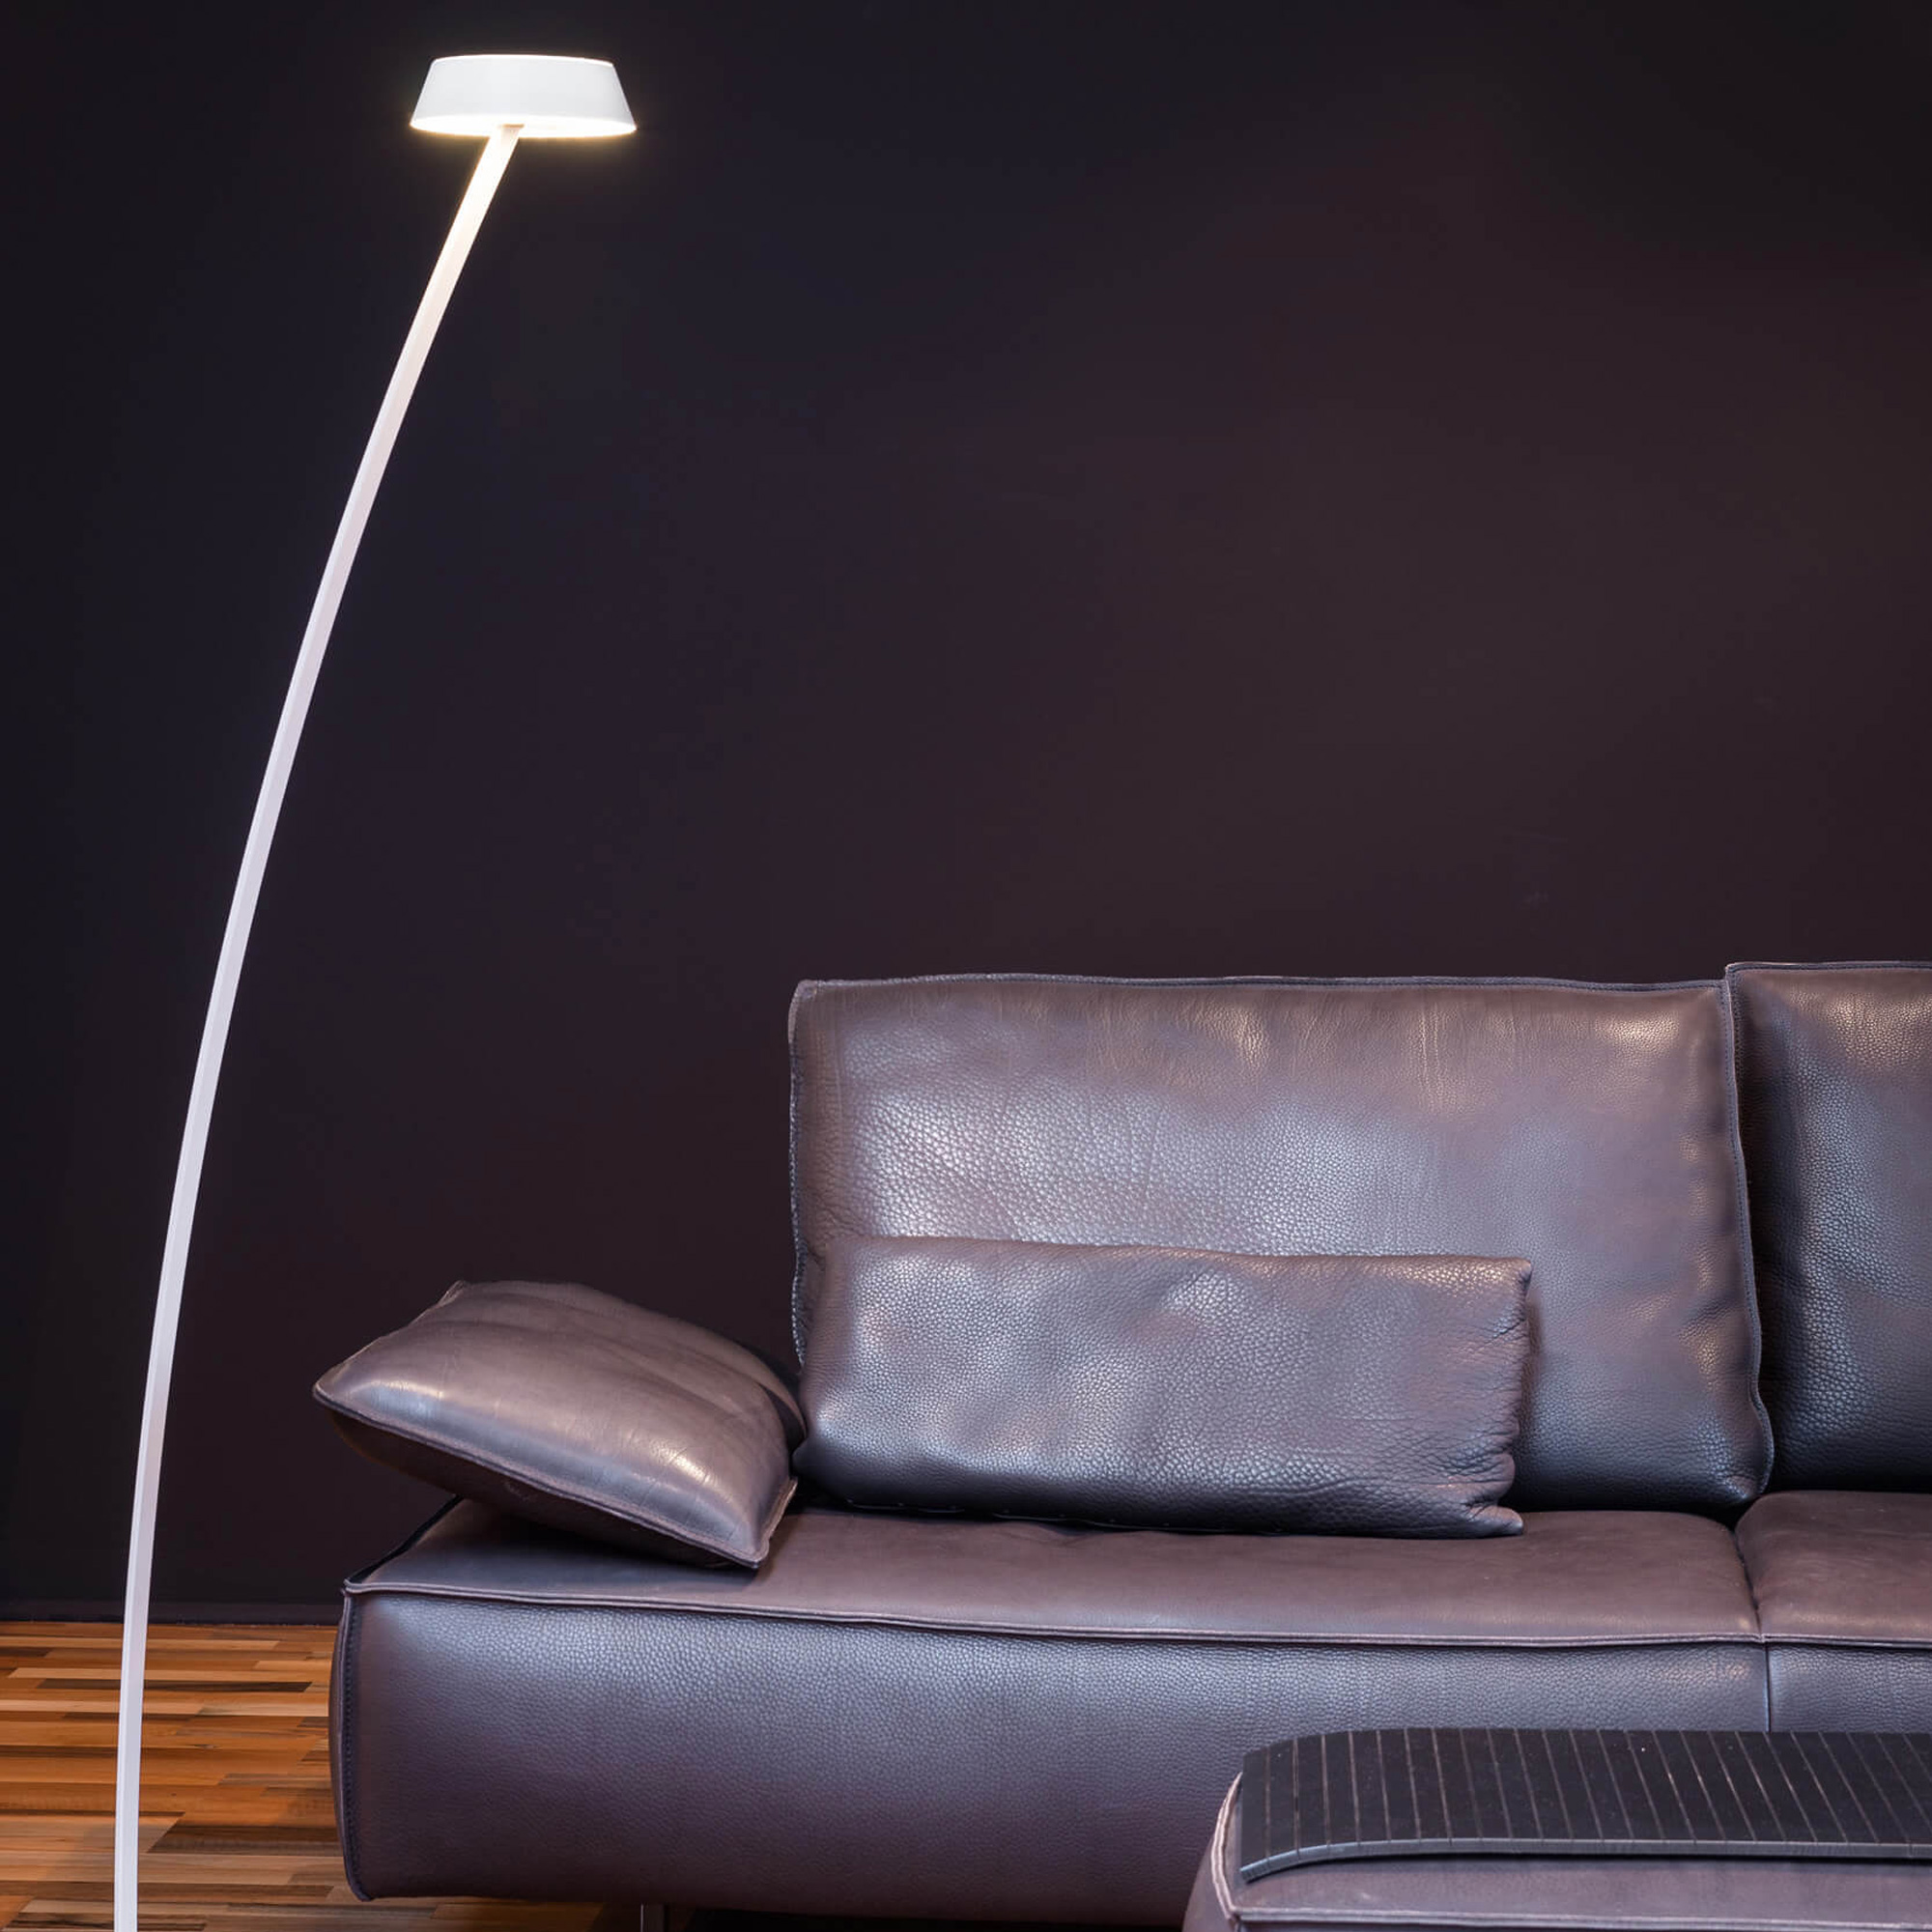 Oligo Plus Glance Led Floor Lamp Curved With Dimmer G44 883 20 21 Reuter